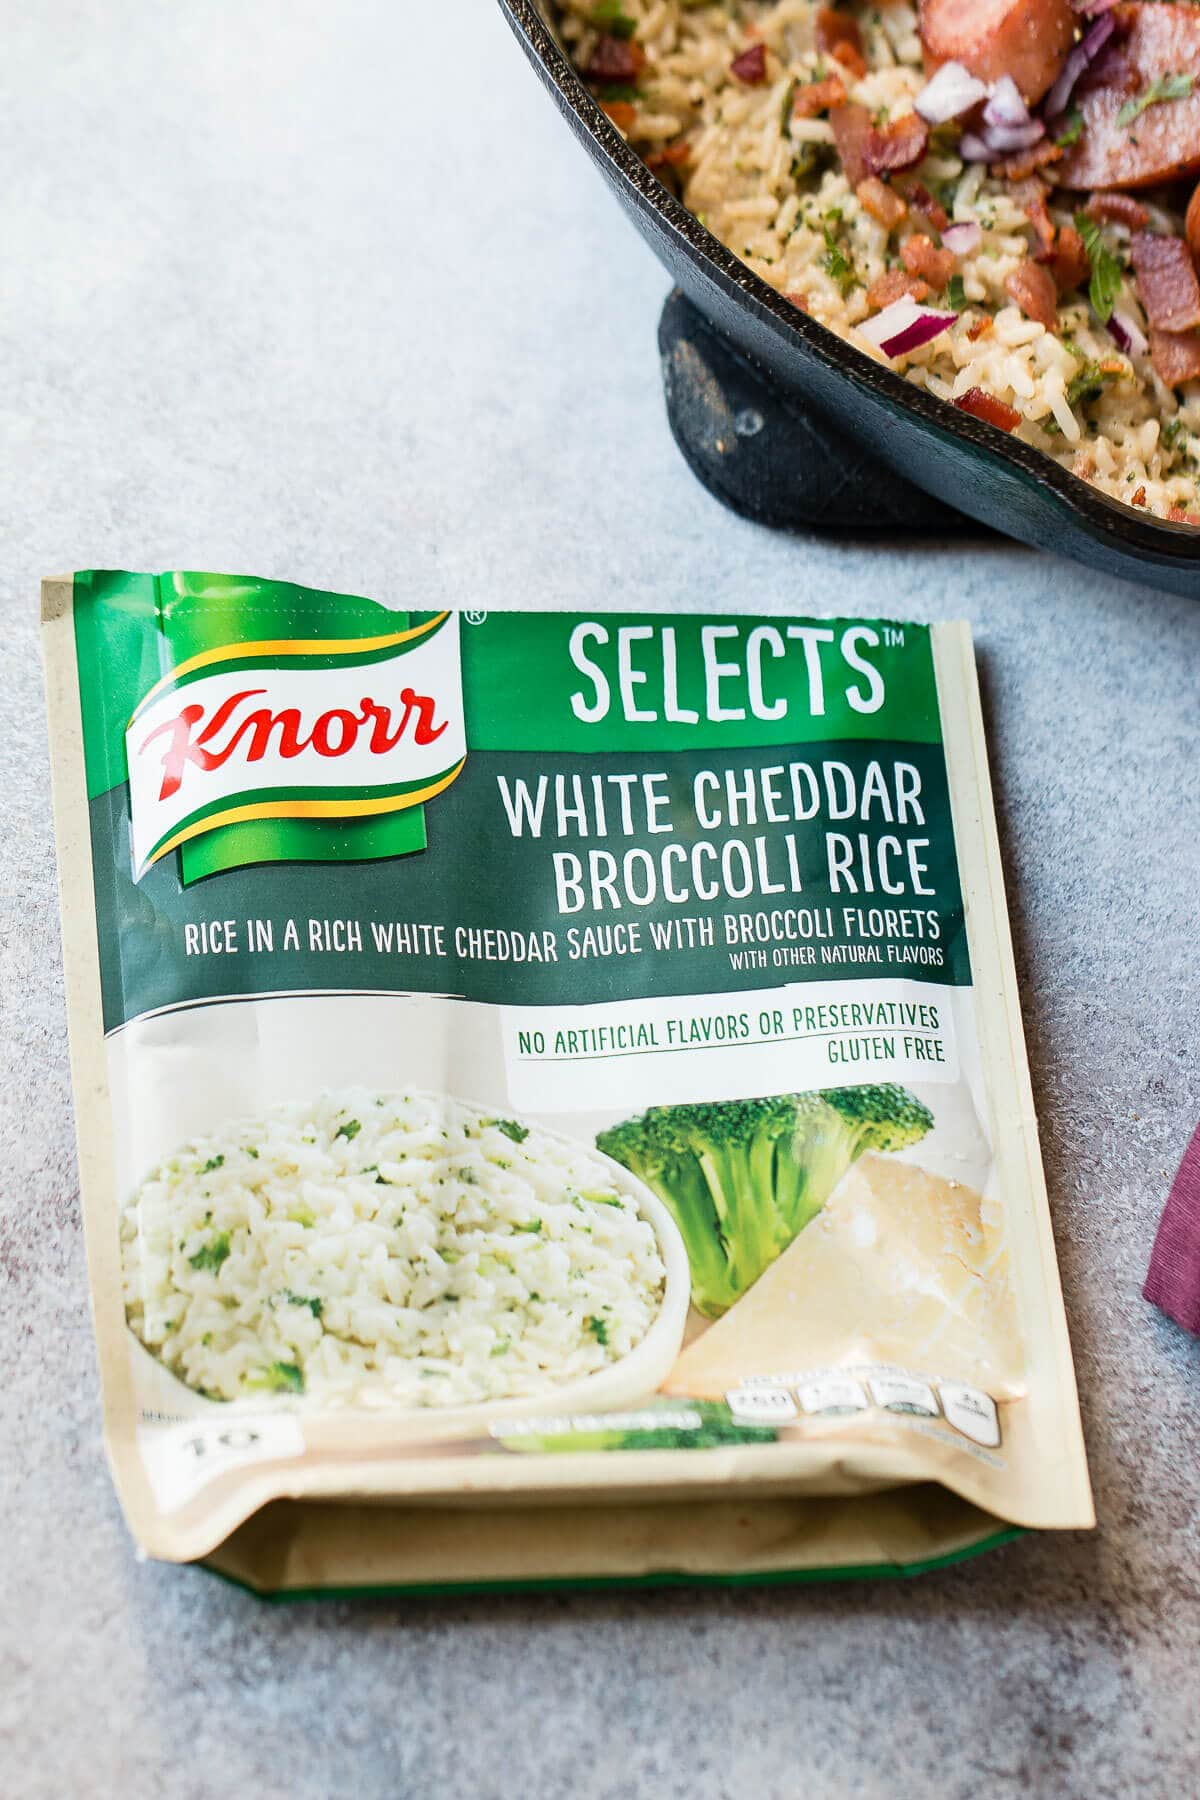 Knorr selects white cheddar broccoli rice was perfect for our kielbasa one skillet dinner! ohsweetbasil.com